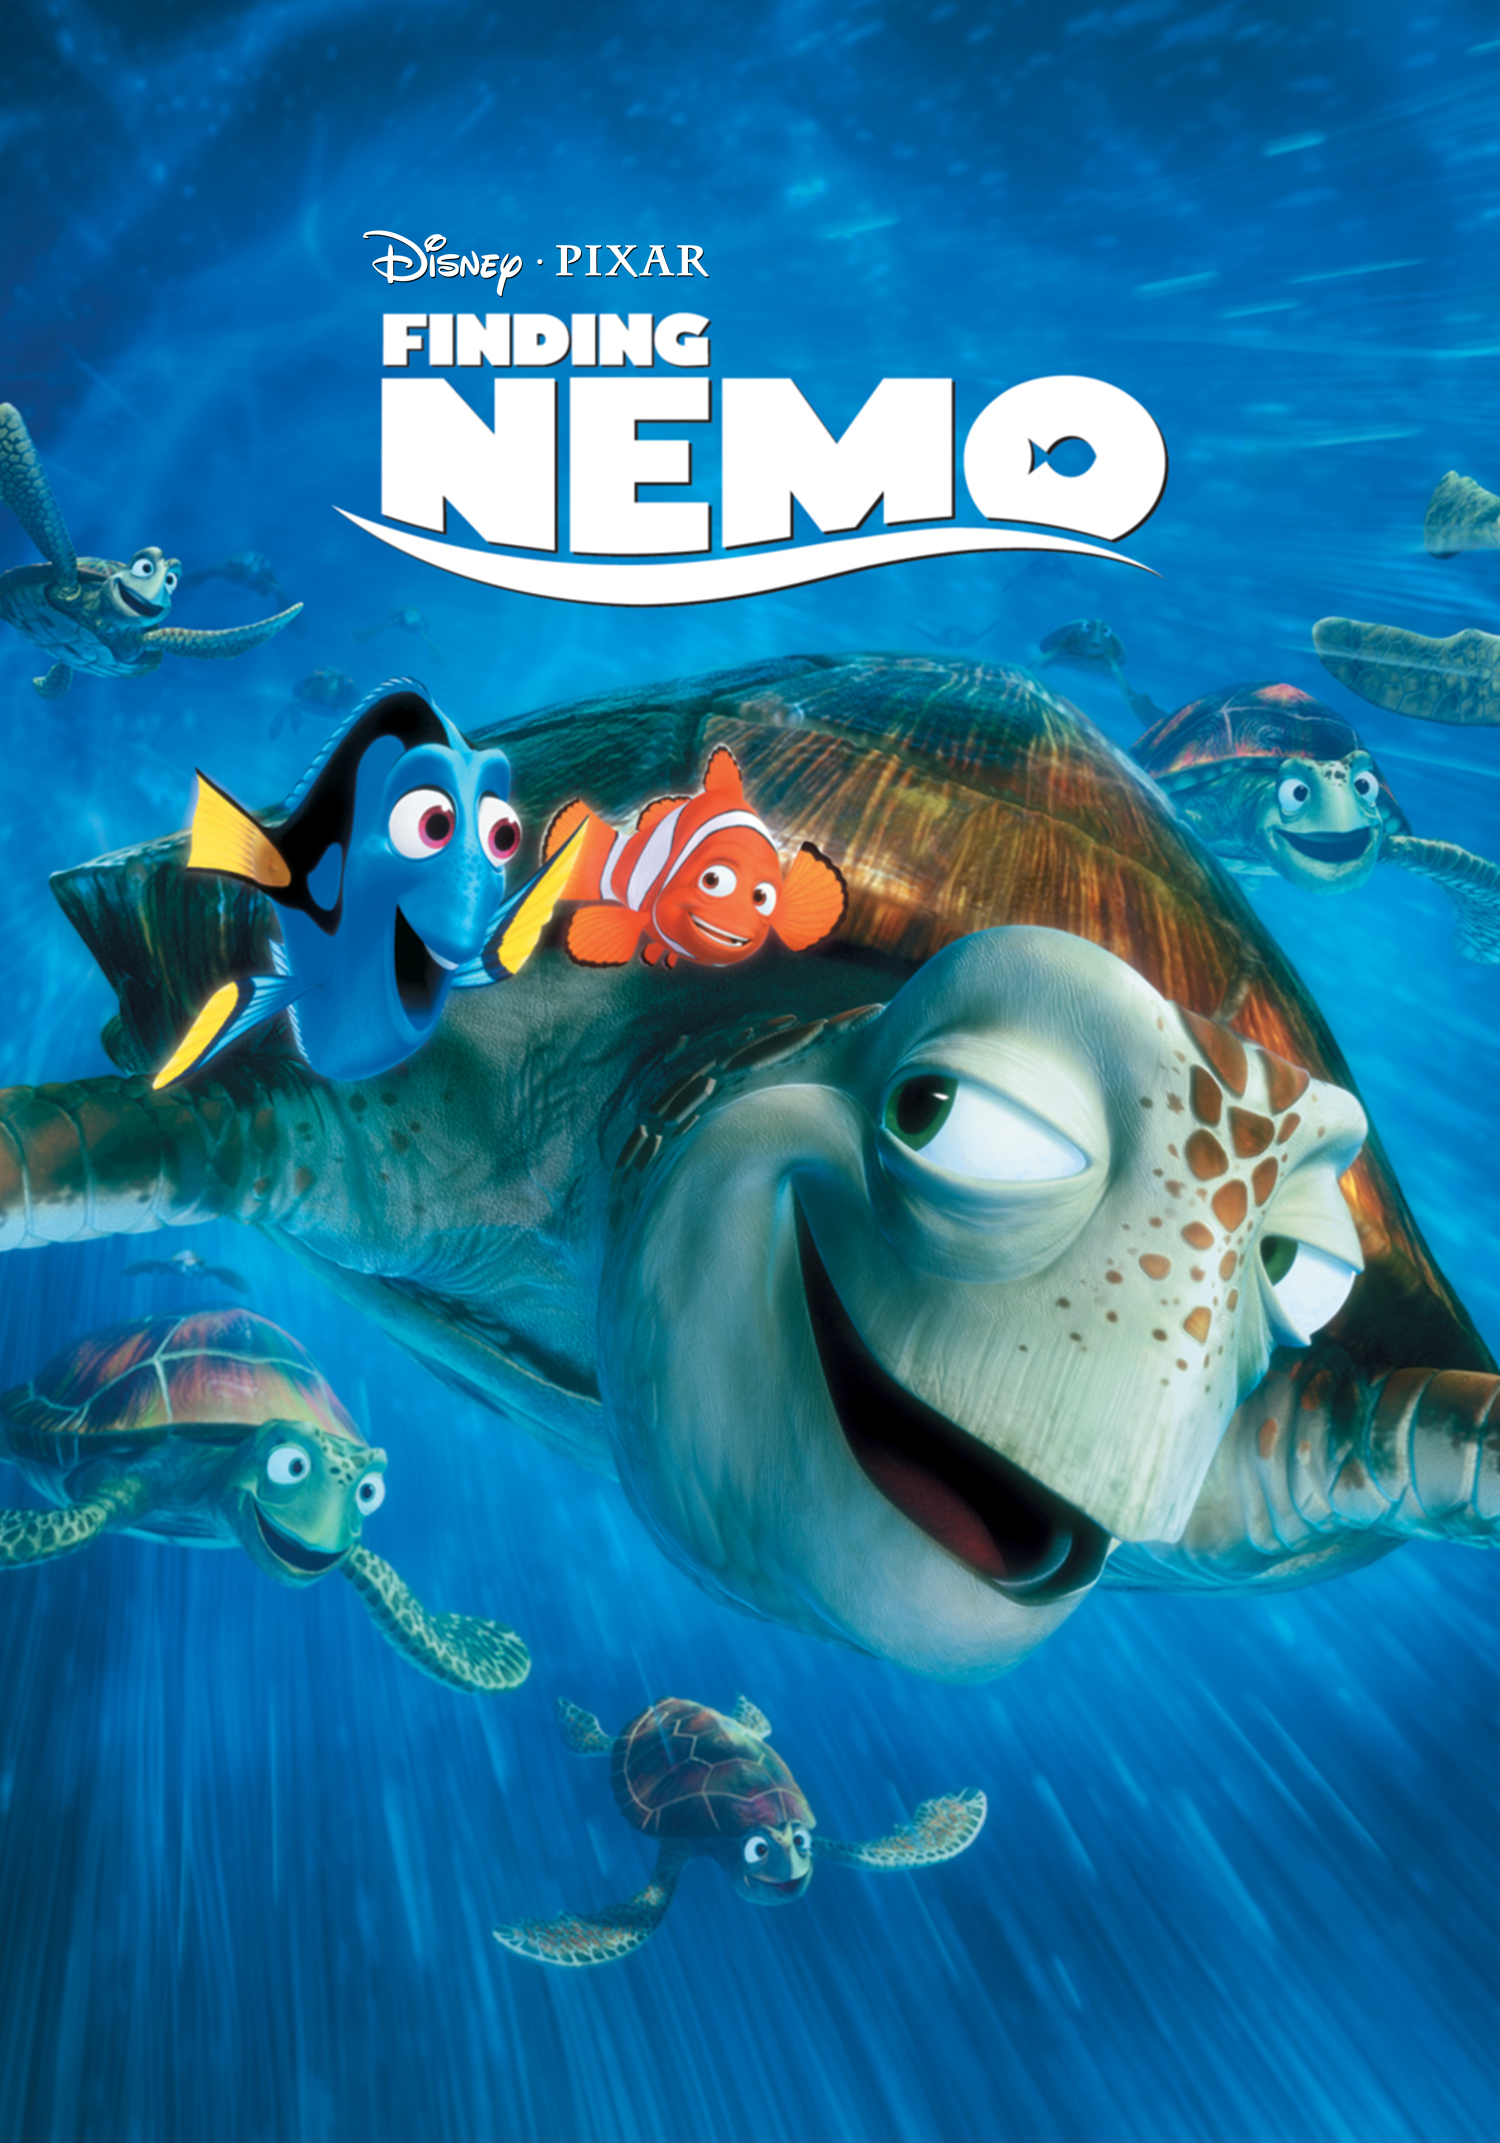 Image finding nemo posterg disney wiki fandom powered by finding nemo posterg altavistaventures Image collections